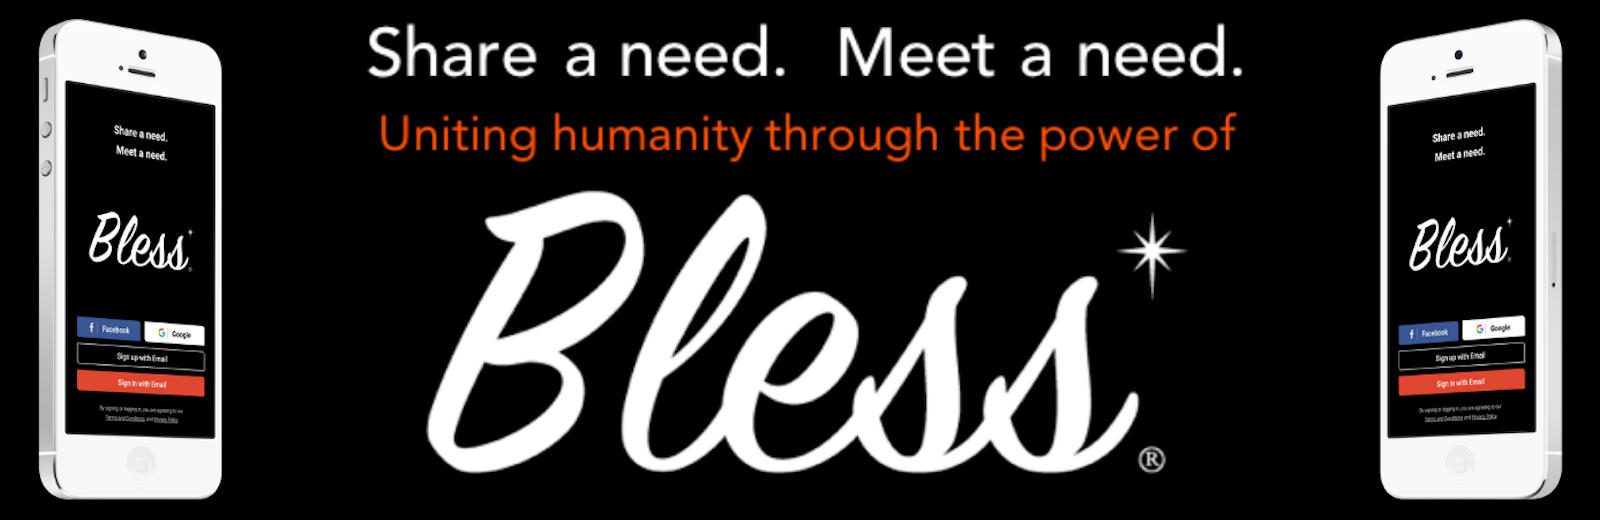 Official Bless Apparel Store